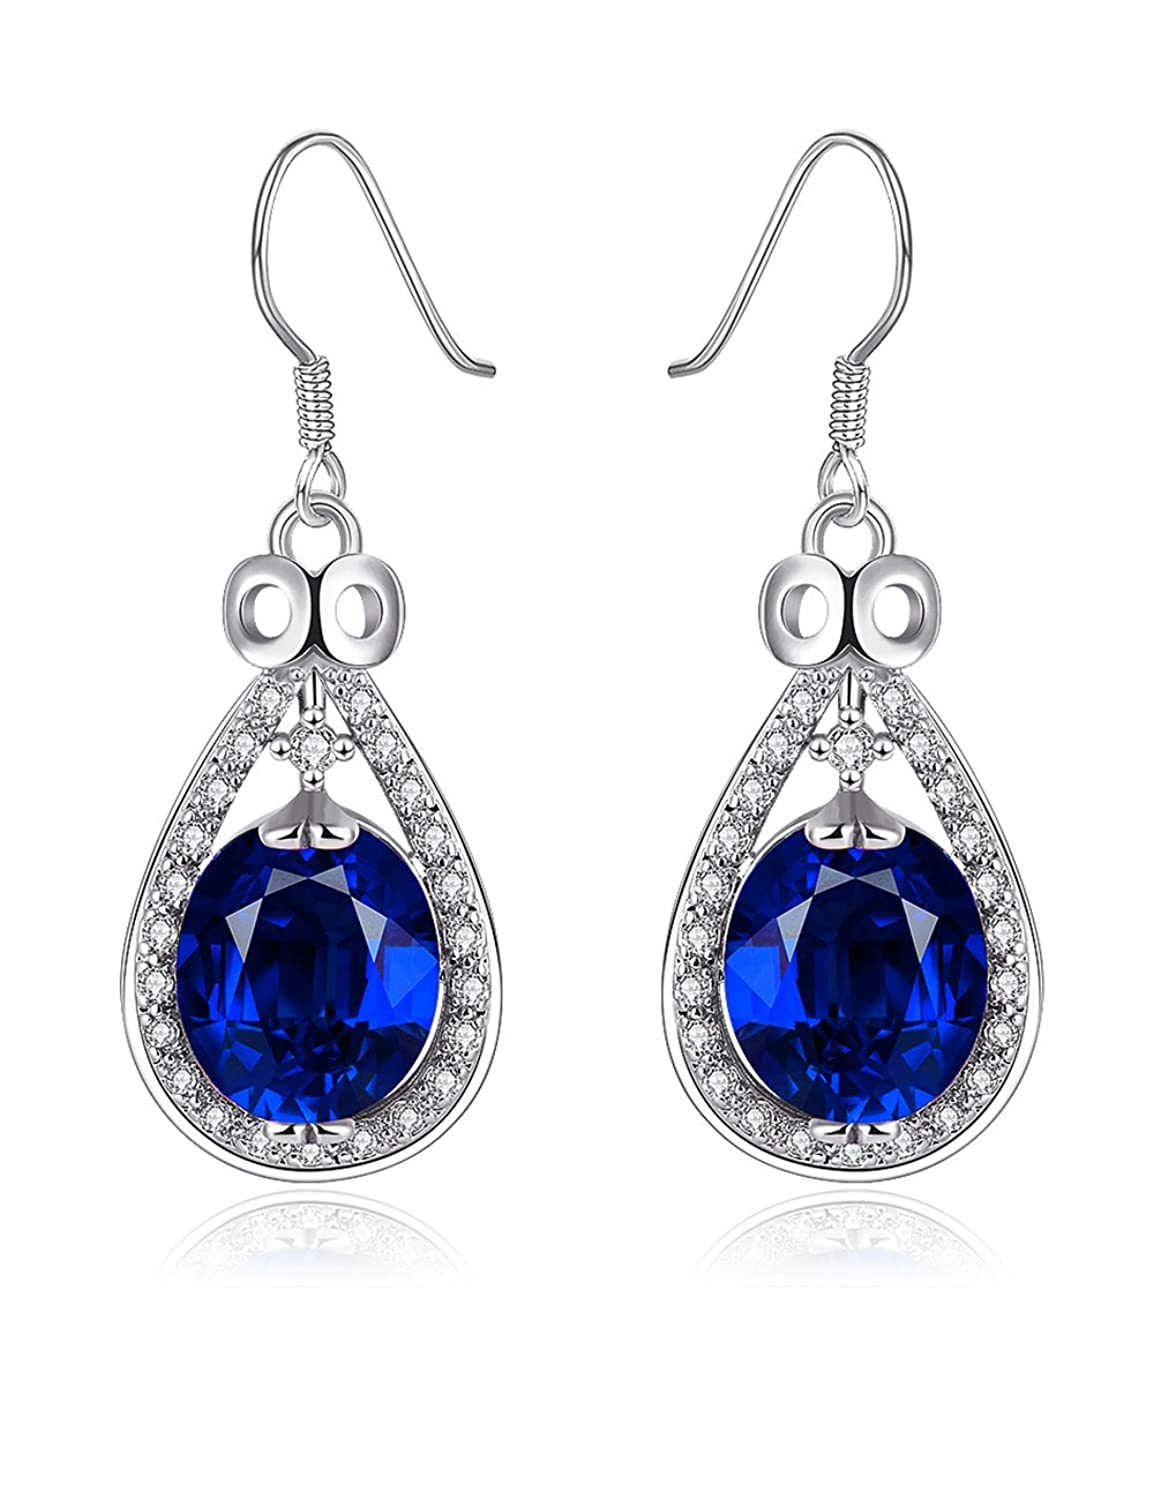 longos brincos item fire for quality high earrings stone waterdrop opal from bright accessories natural in fine blue dangle drop jewelry women